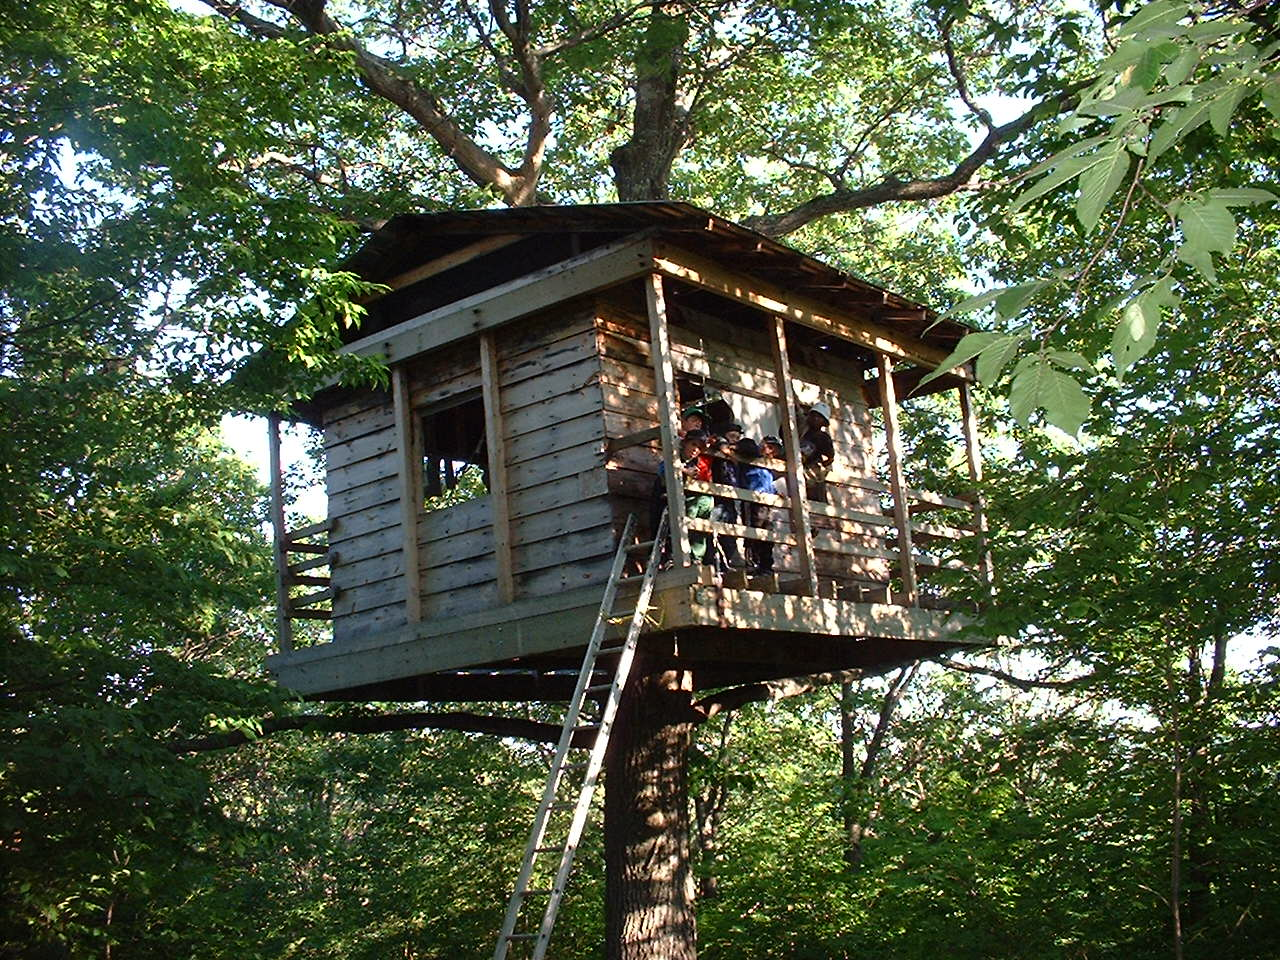 Giant tree house medeba for Building a house in ontario